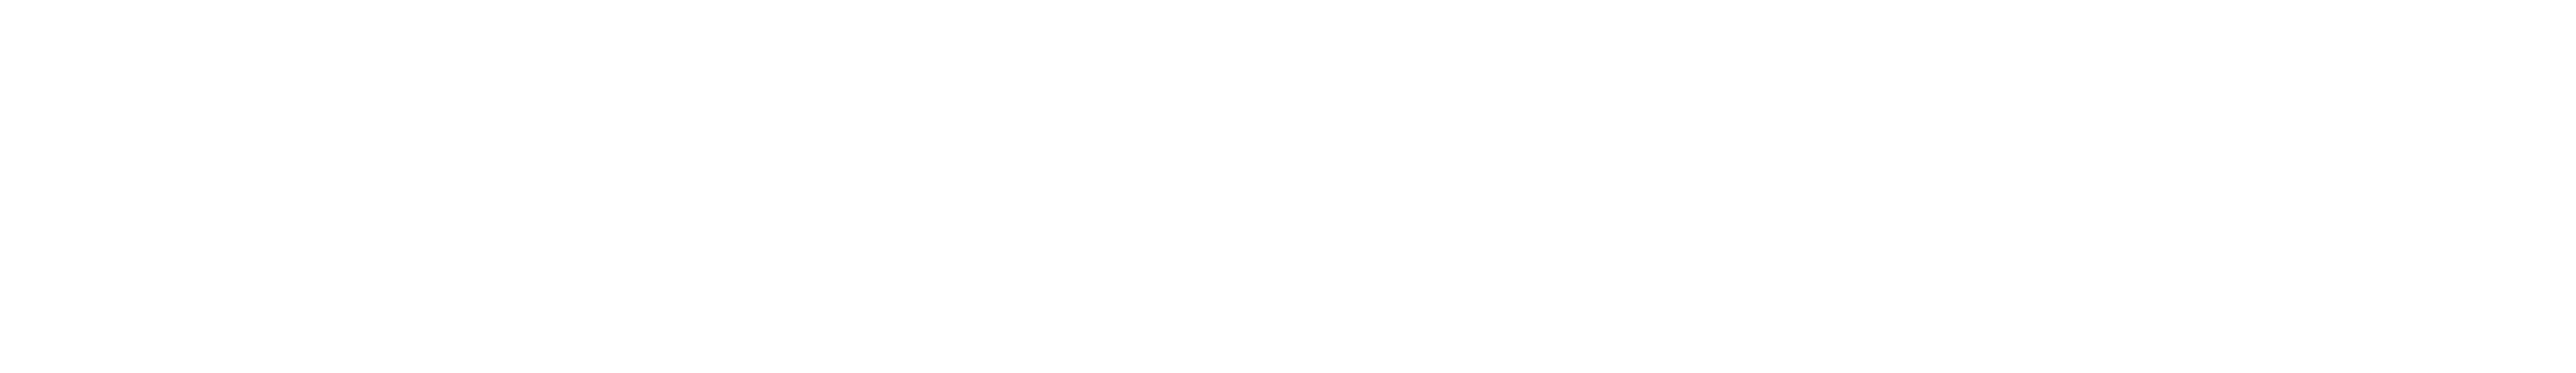 to build an epic life, you have to conquer (1)